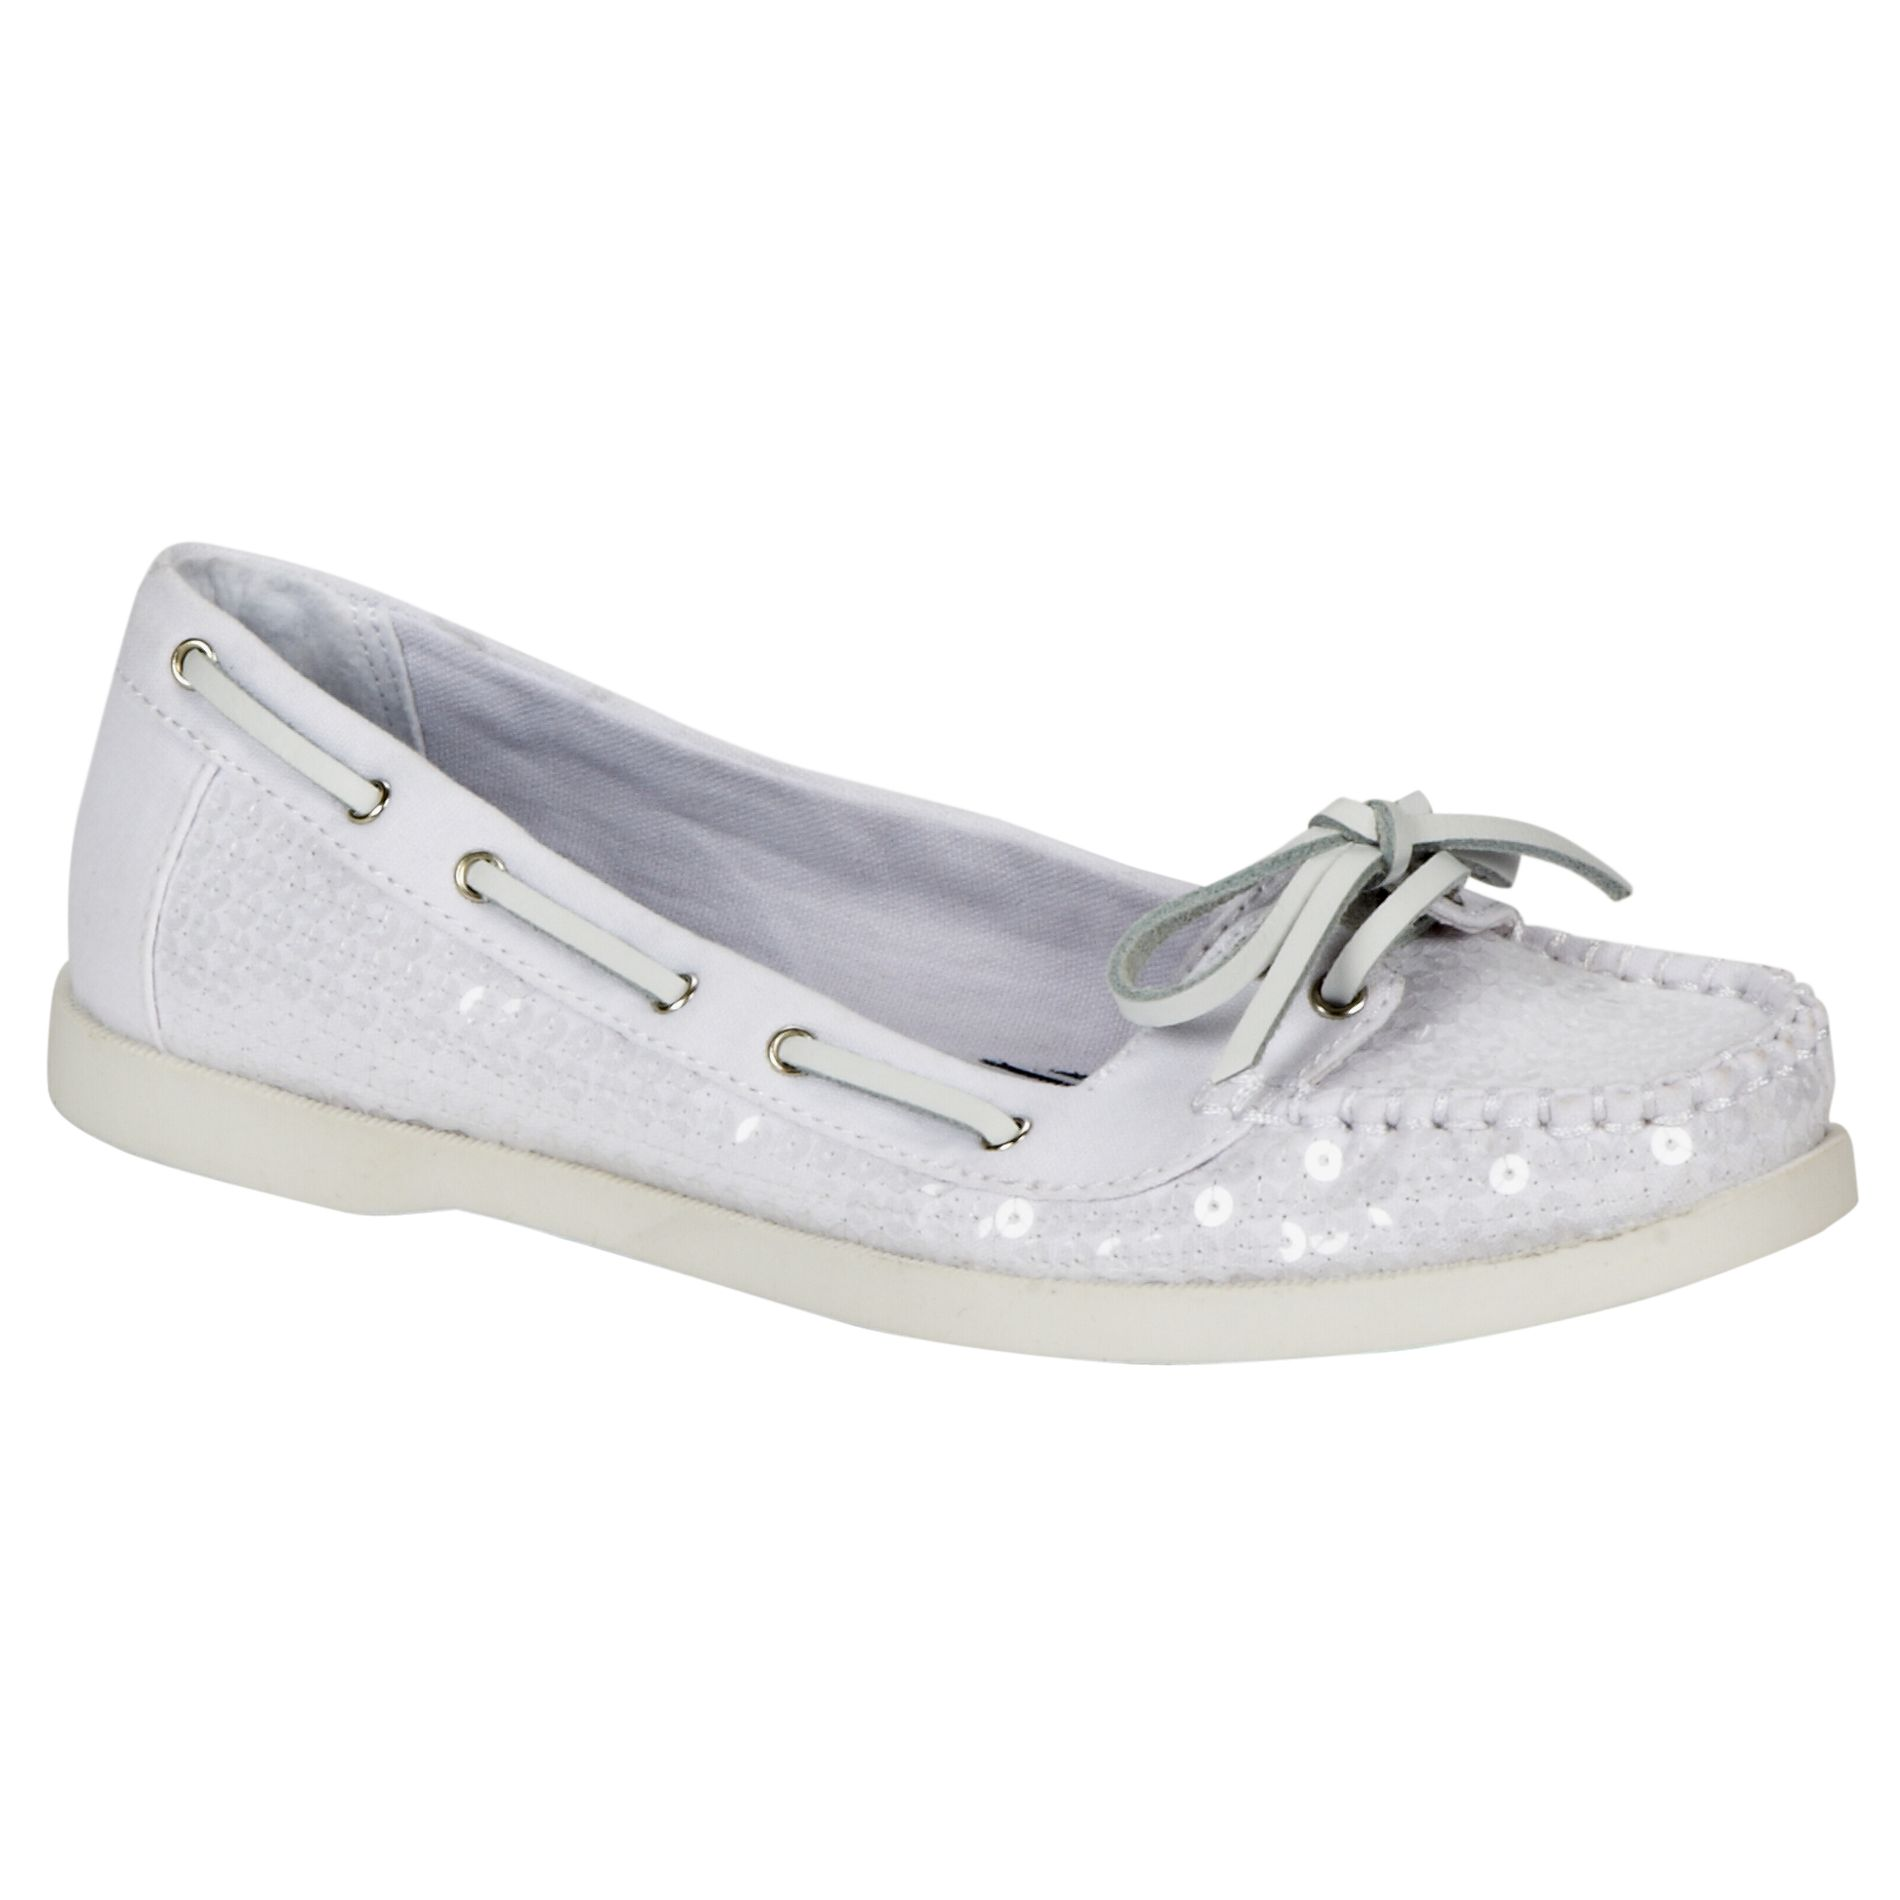 Melrose Avenue Women s Starboard Casual Boat Shoe - White